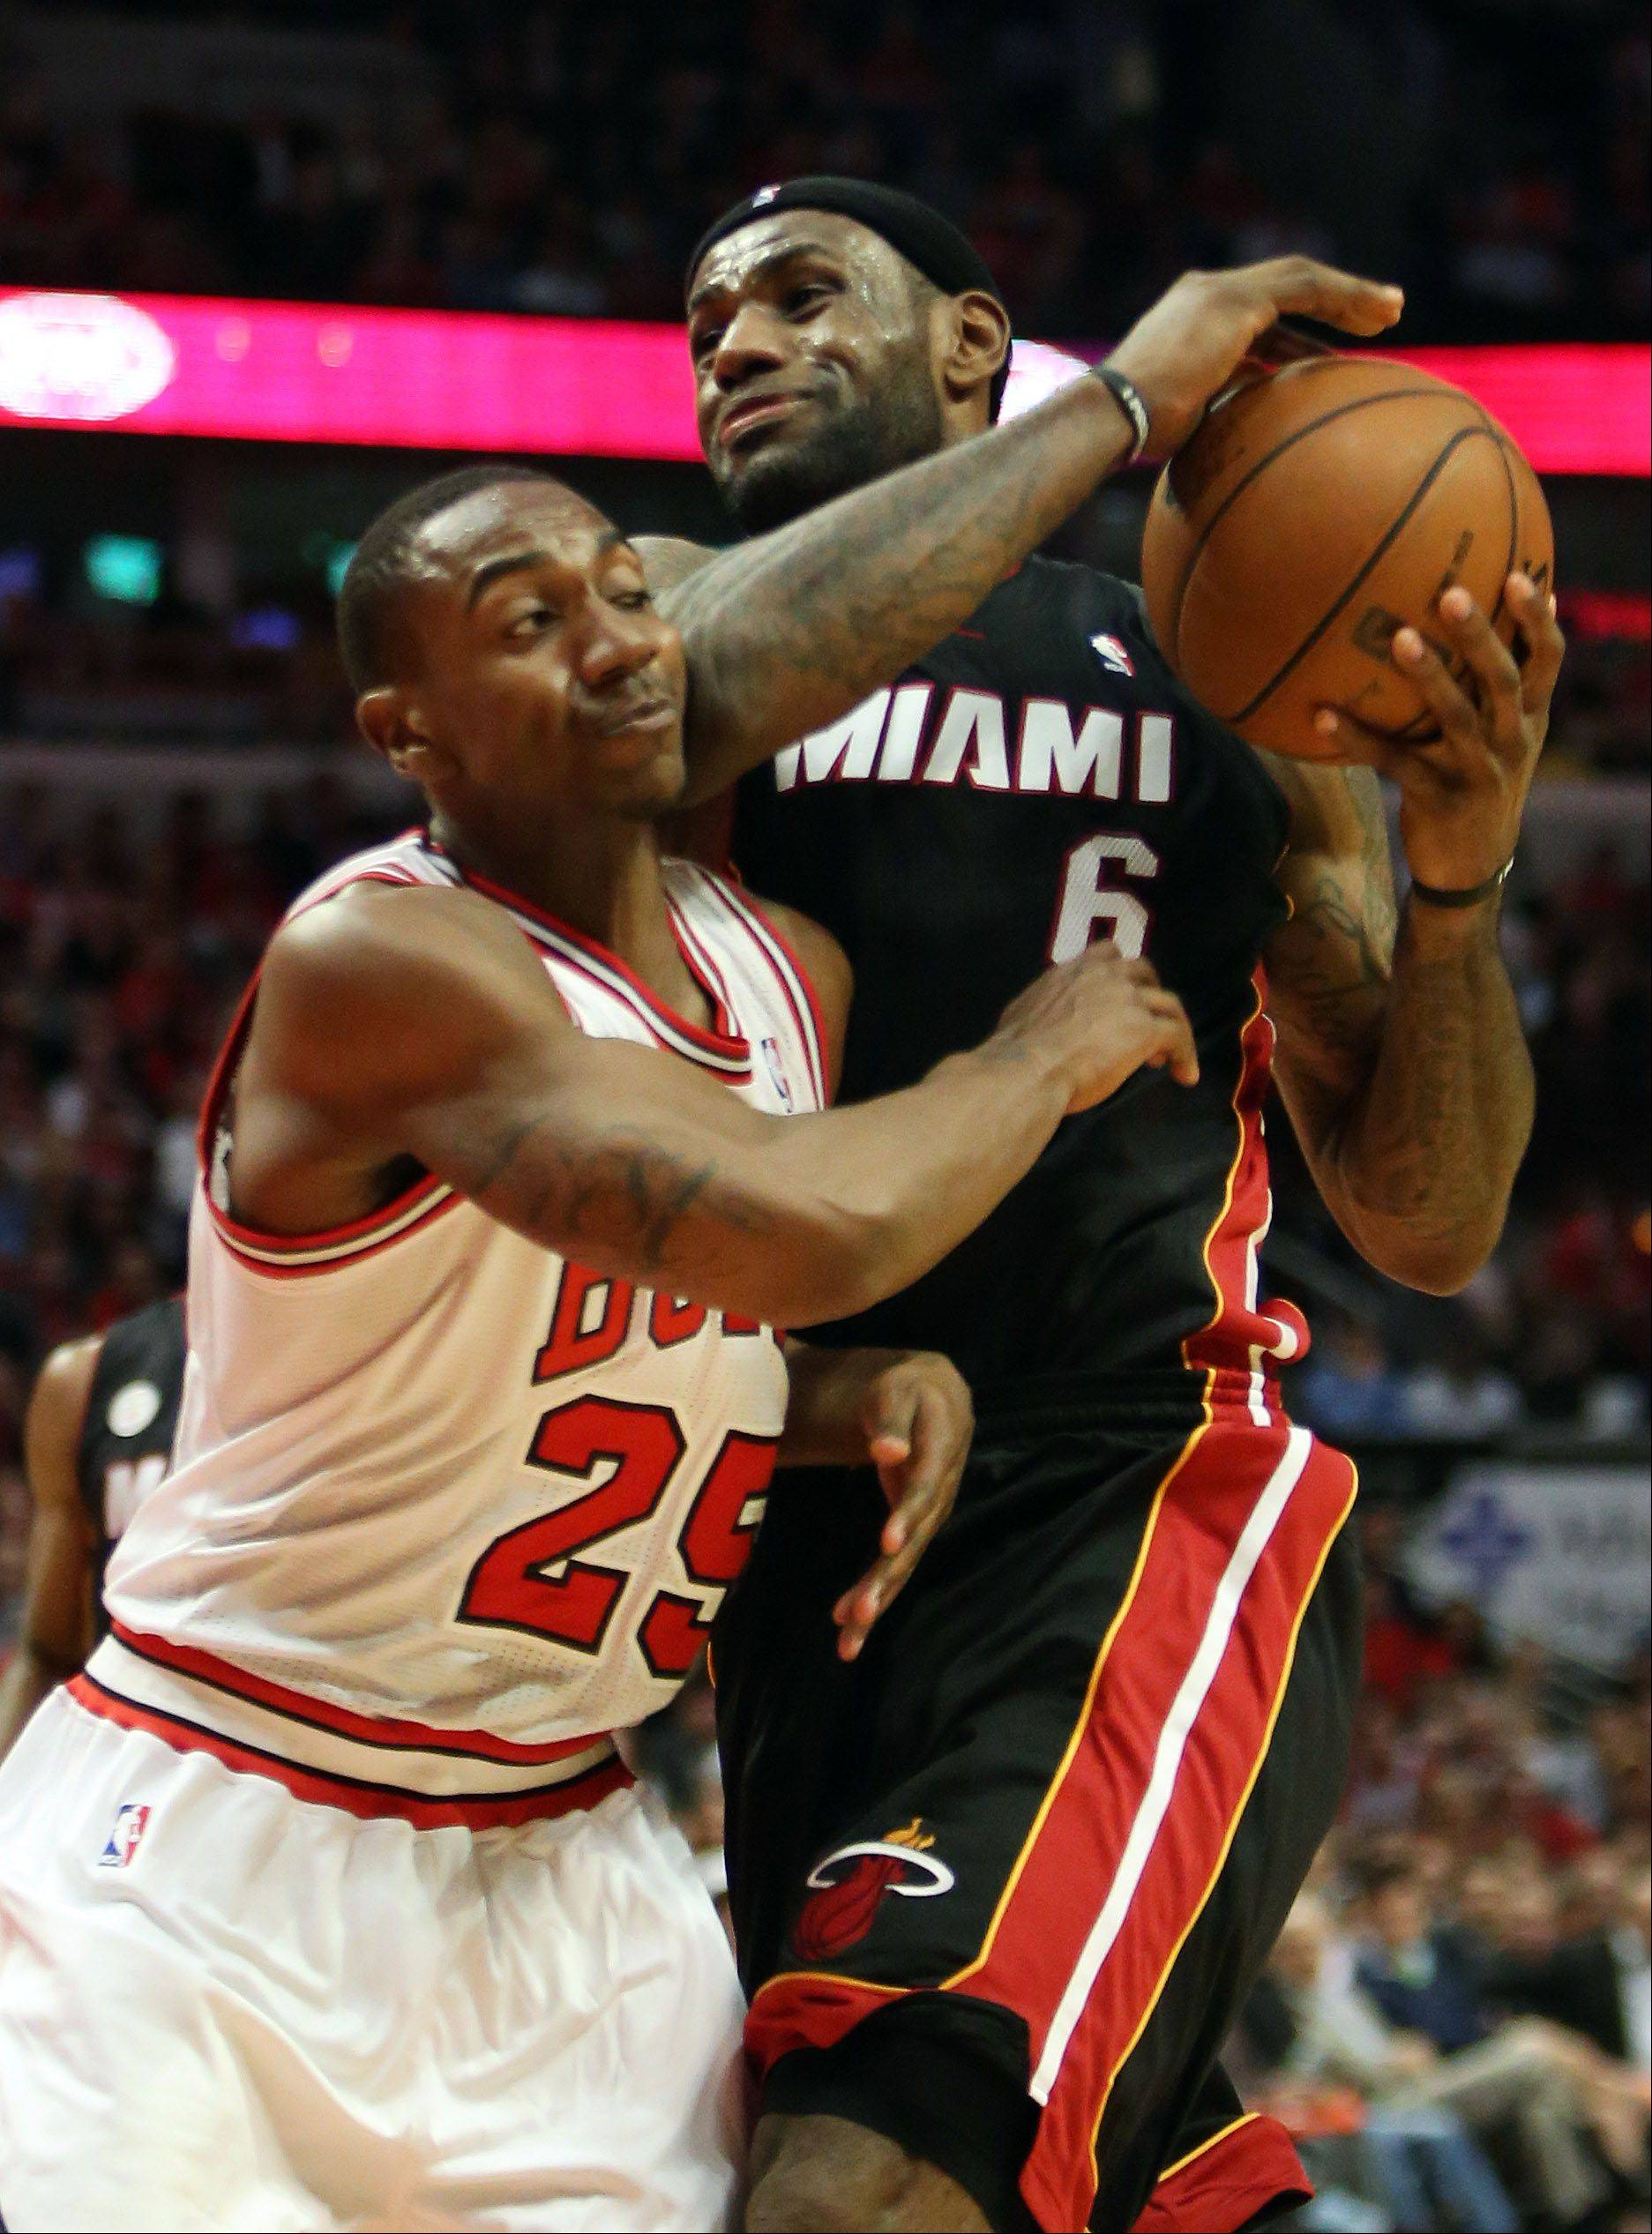 Miami's LeBron James drives on Bulls point guard Marquis Teague during Game 4 of the NBA Eastern Conference semifinals. Most of Teague's playing time in his rookie season game while Kirk Hinrich was injured.